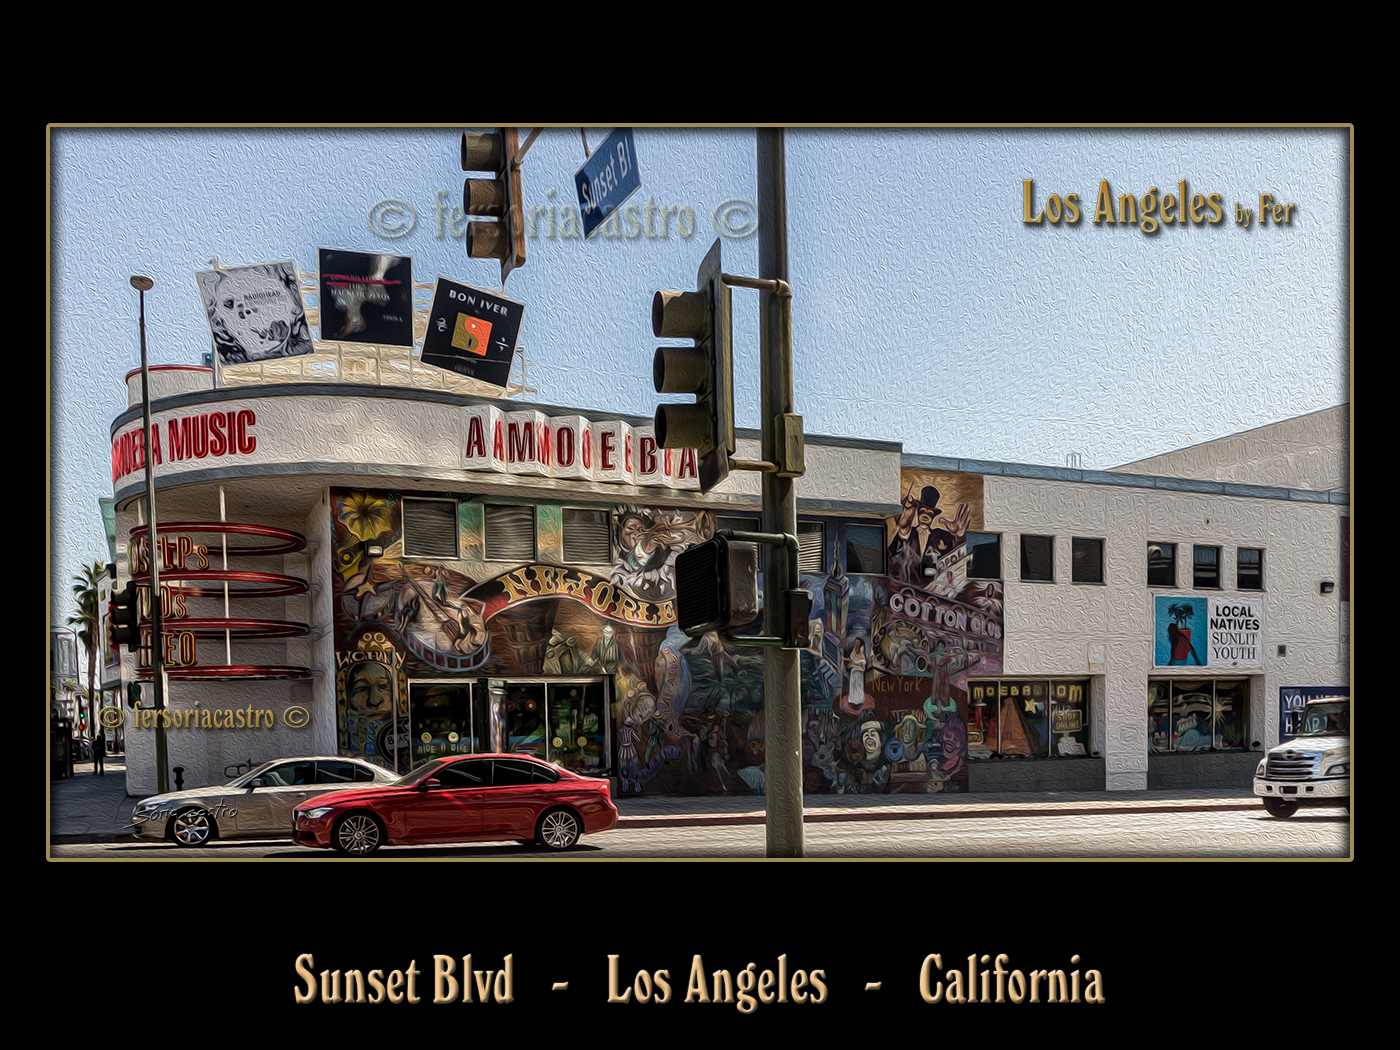 Amoeba Music Sunset Blvd